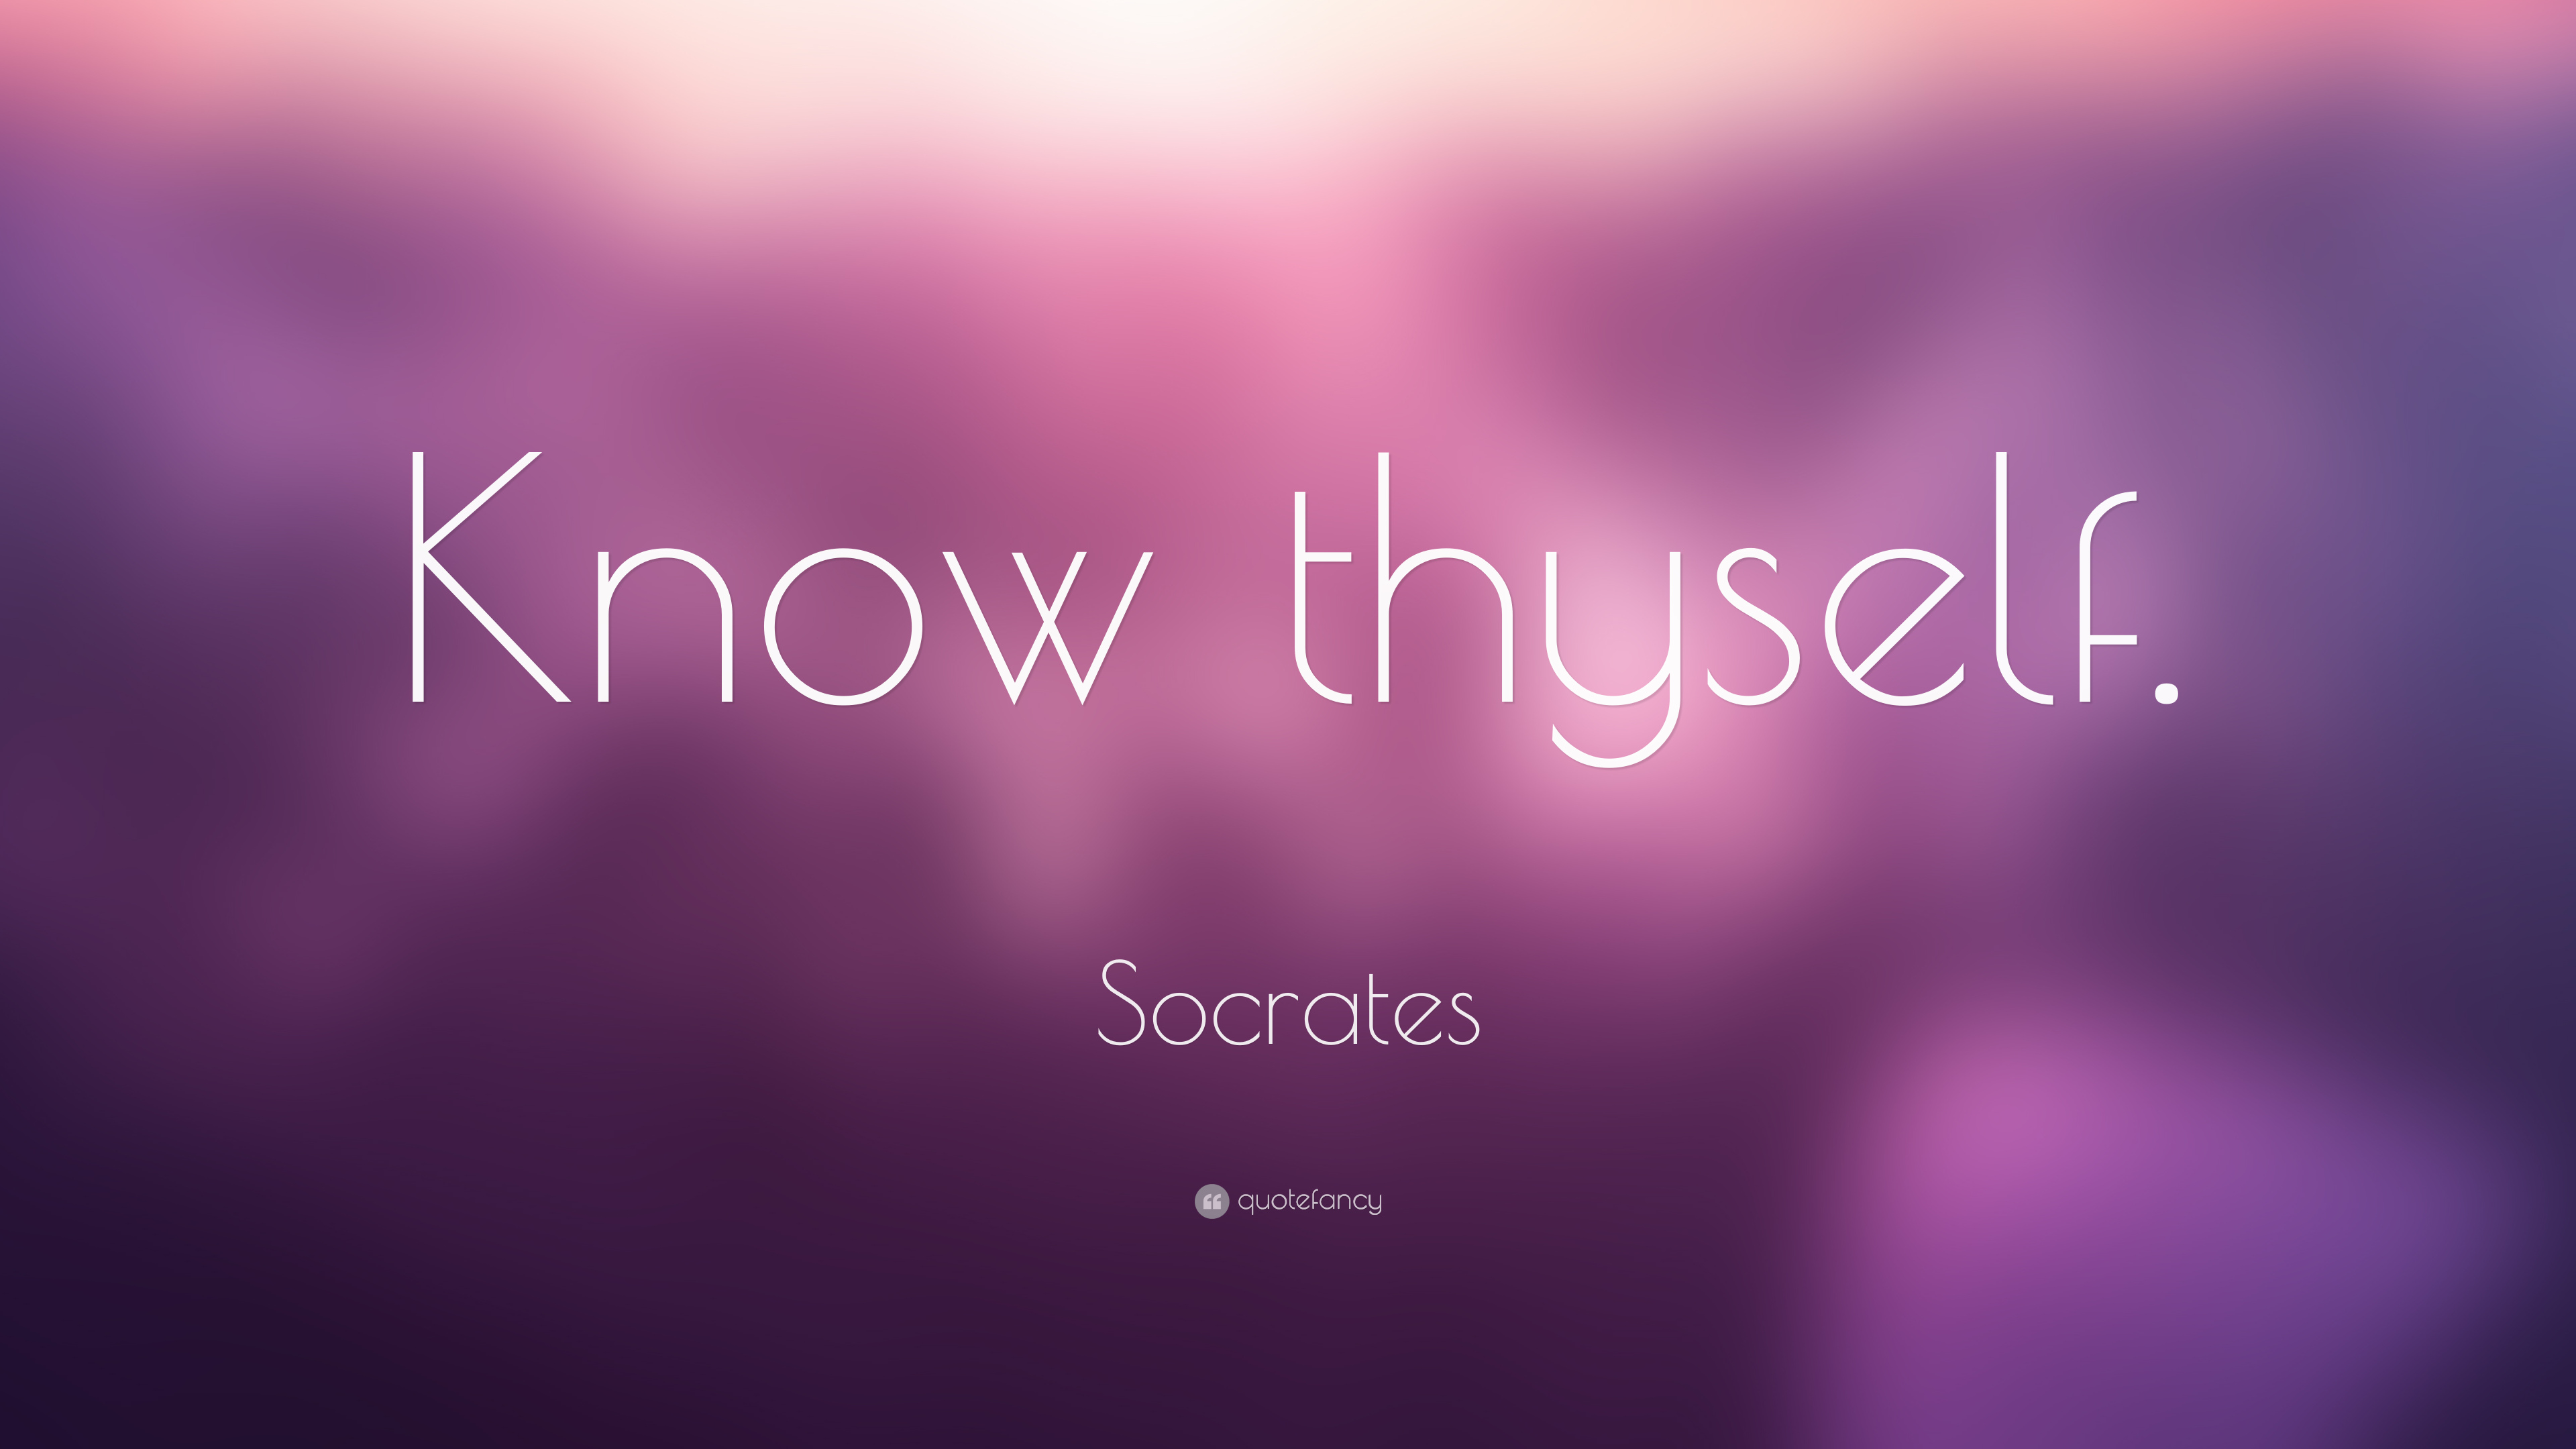 socrates know thyself Know thyself: gnōthi seauton: these two words were inscribed in the vestibule of the temple of apollo in delphi they were the reason that socrates disputed the declaration of the oracle when she had named him as the wisest person on earth.